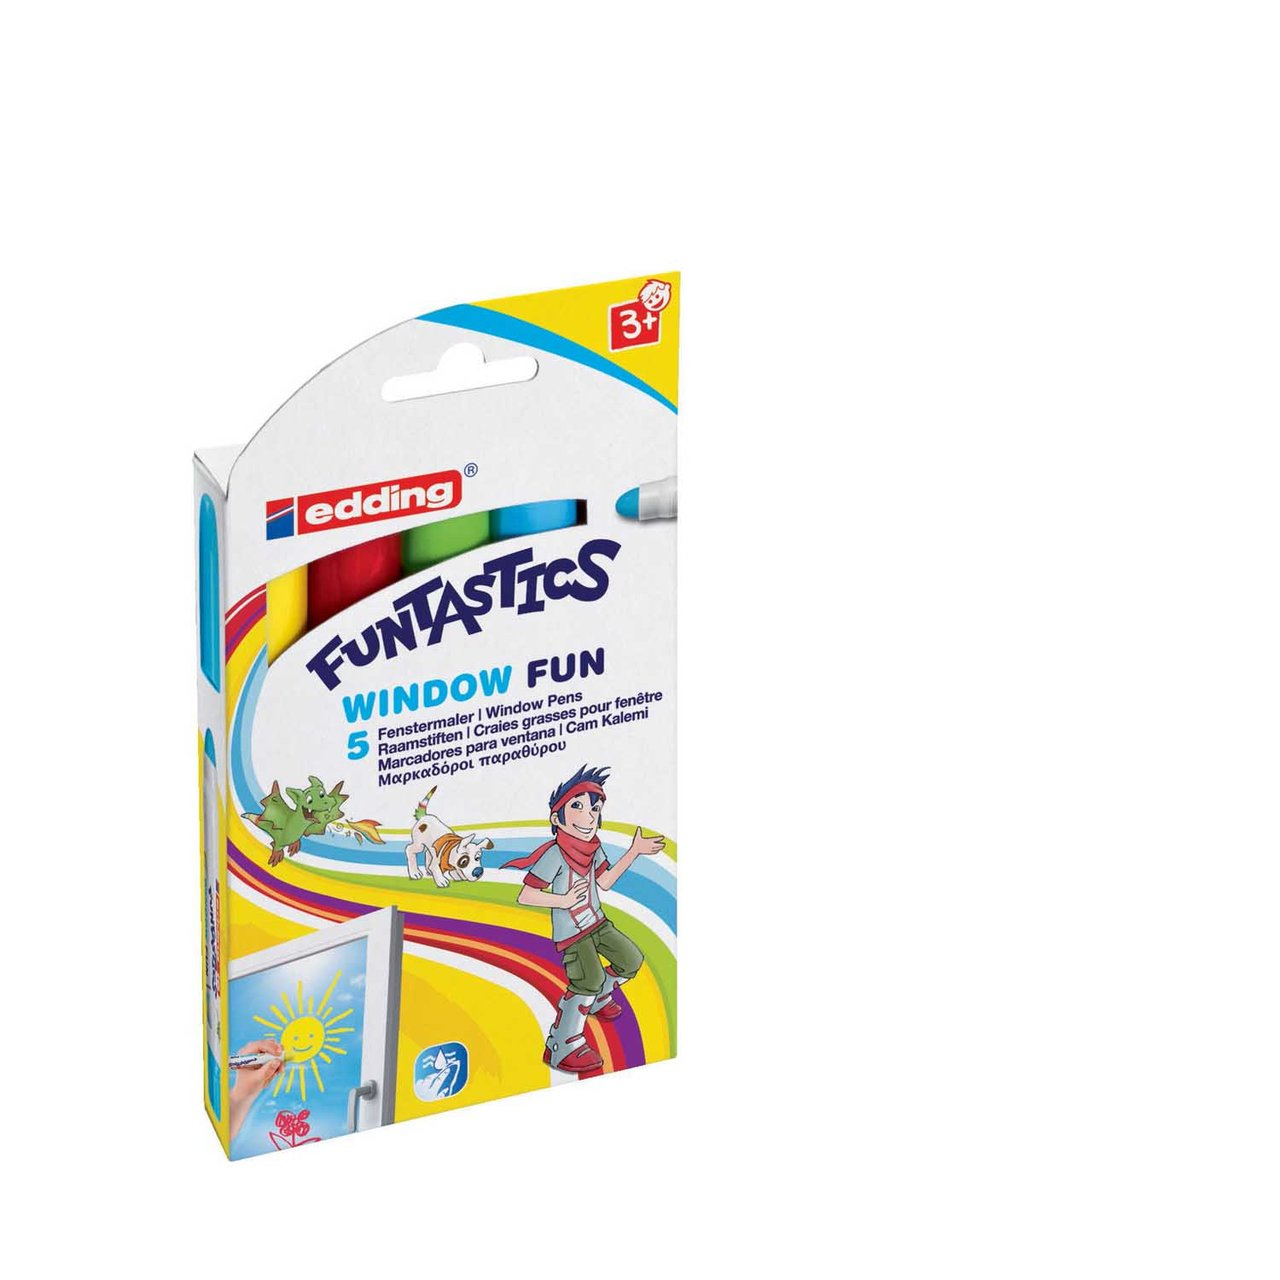 edding Funtastic Window Fun 5er Set von Edding